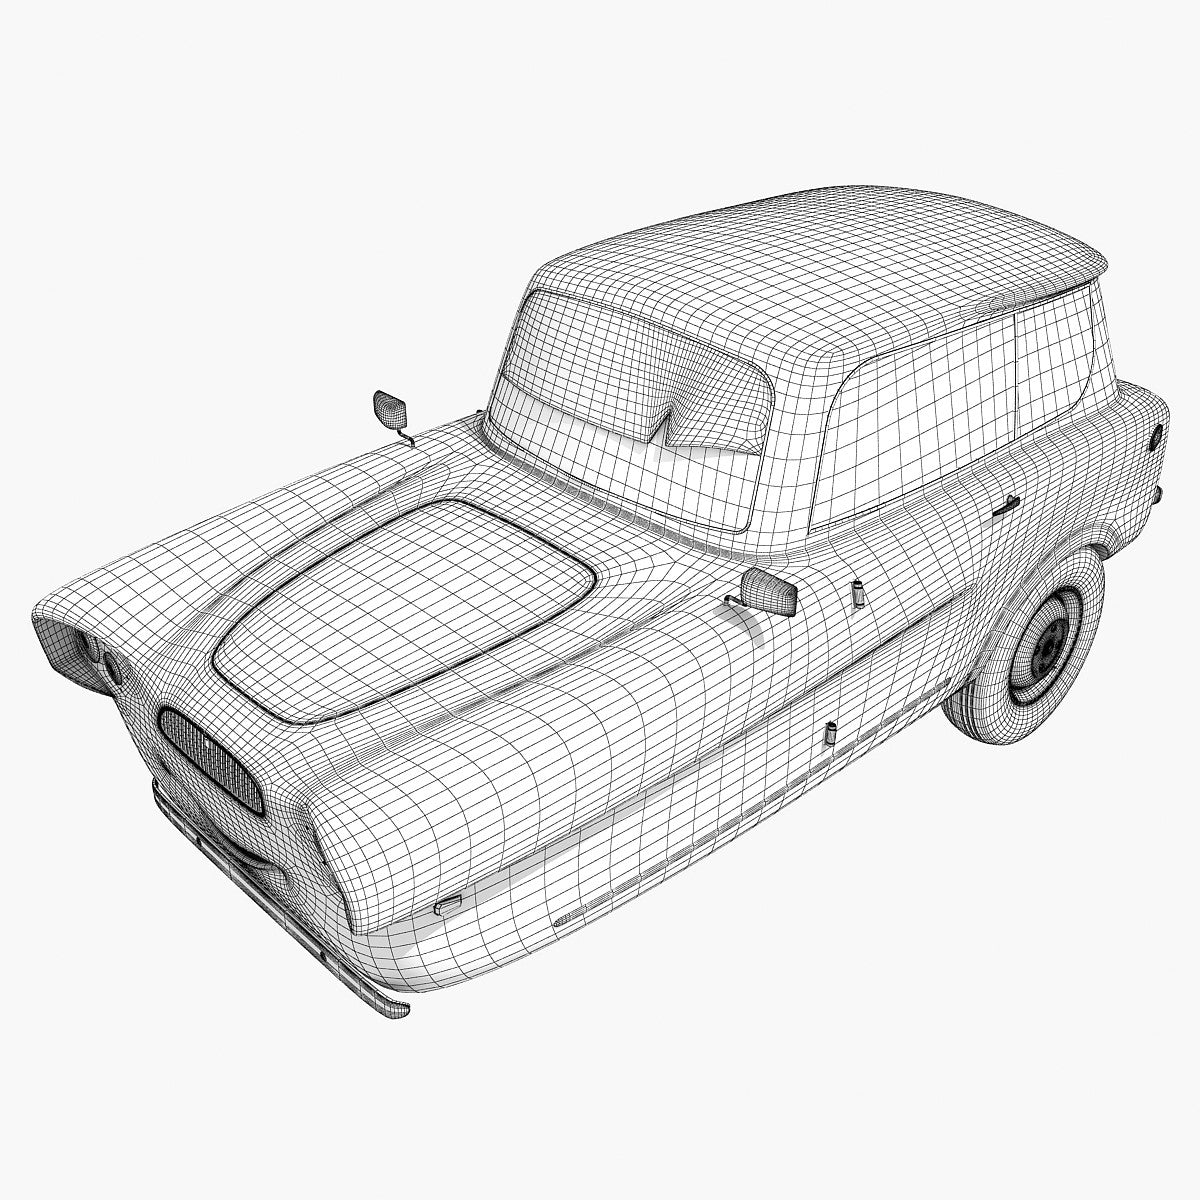 Disney Pixar Cars 2 3D Models